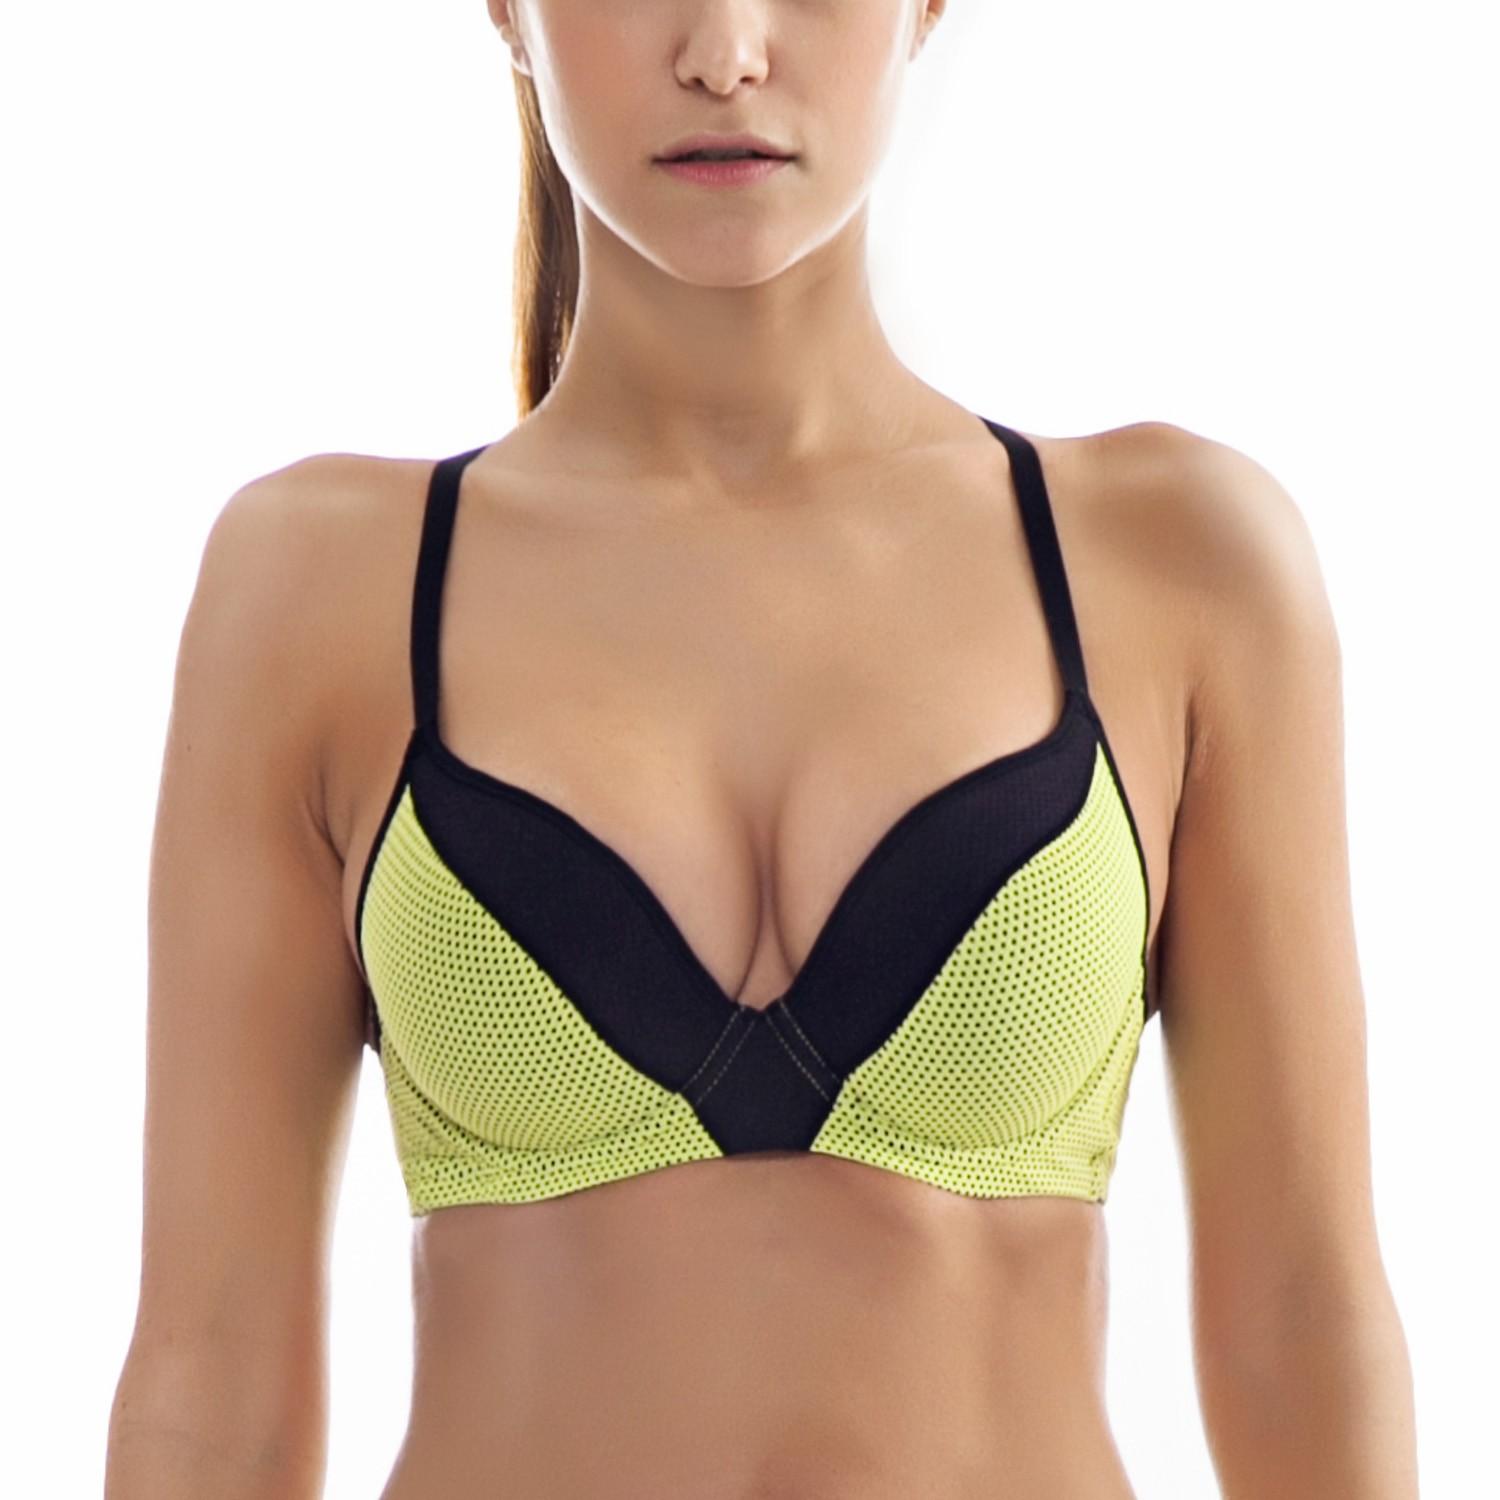 La Isla New Push Up Underwire Padded Racerback Fashion Comfort Sports Bra